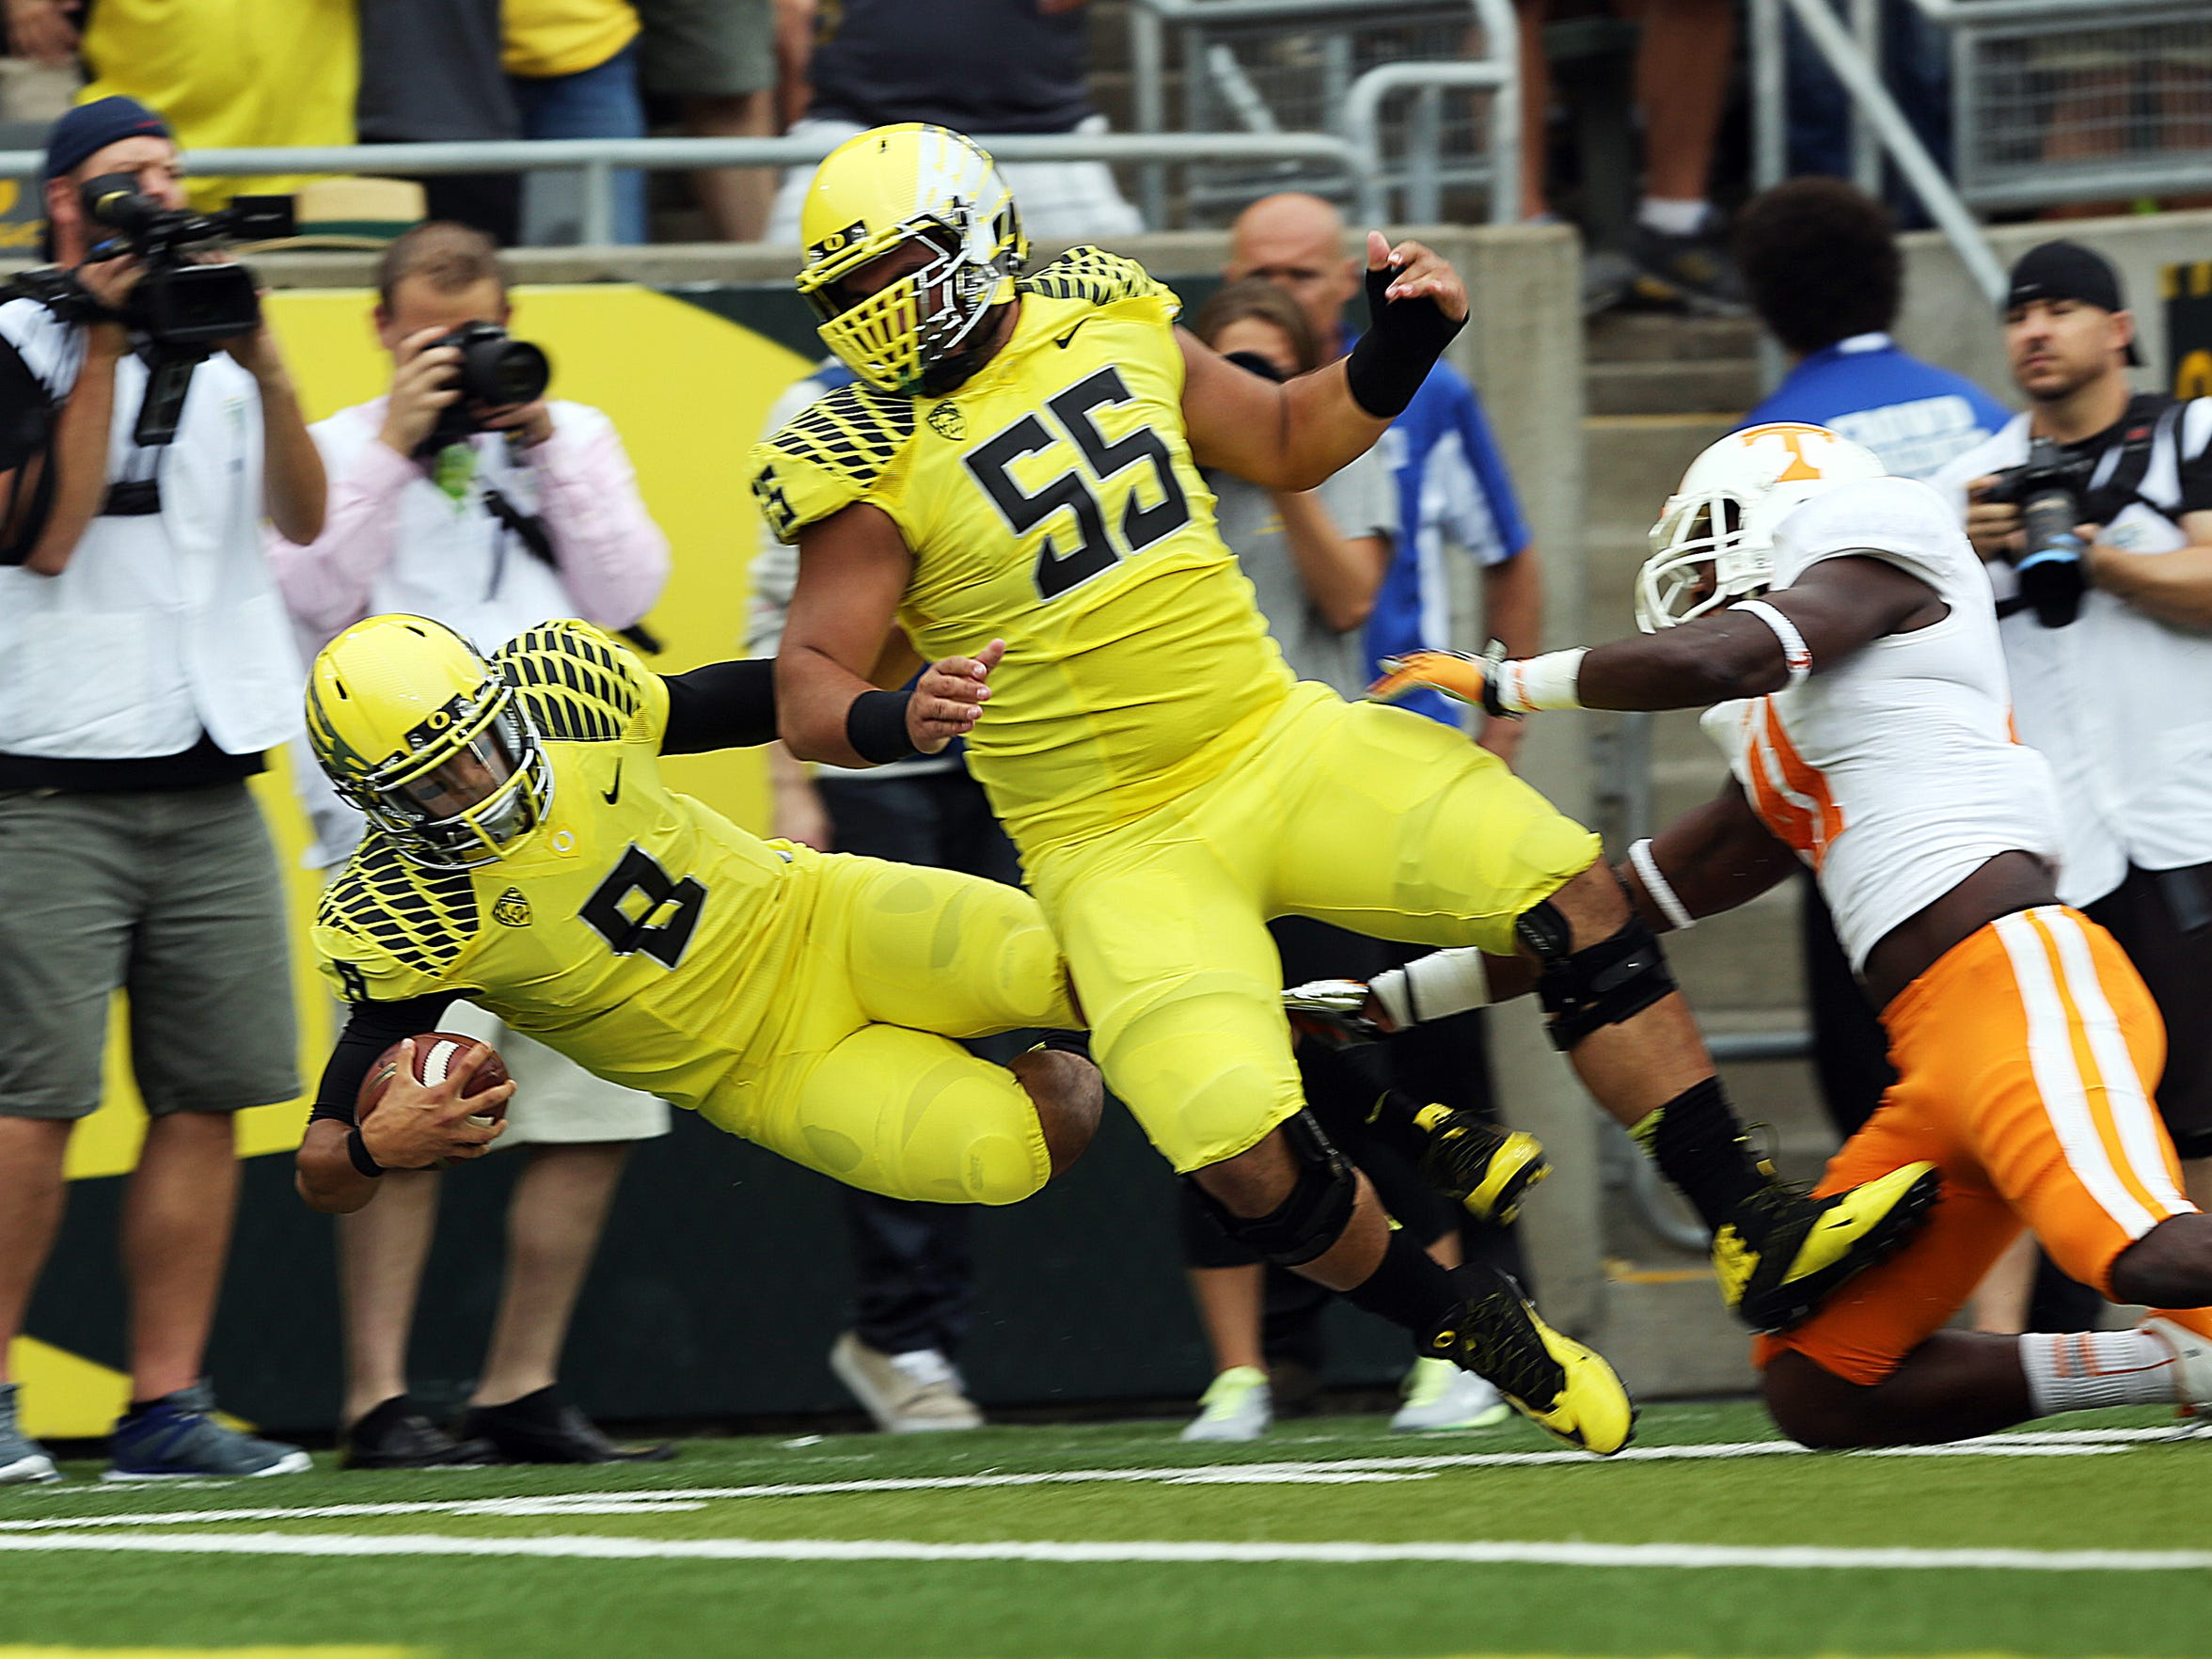 Marcus Mariota and the Oregon Ducks defeat Tennessee 59-14 in a college football game at Autzen Stadium in Eugene in 2013.